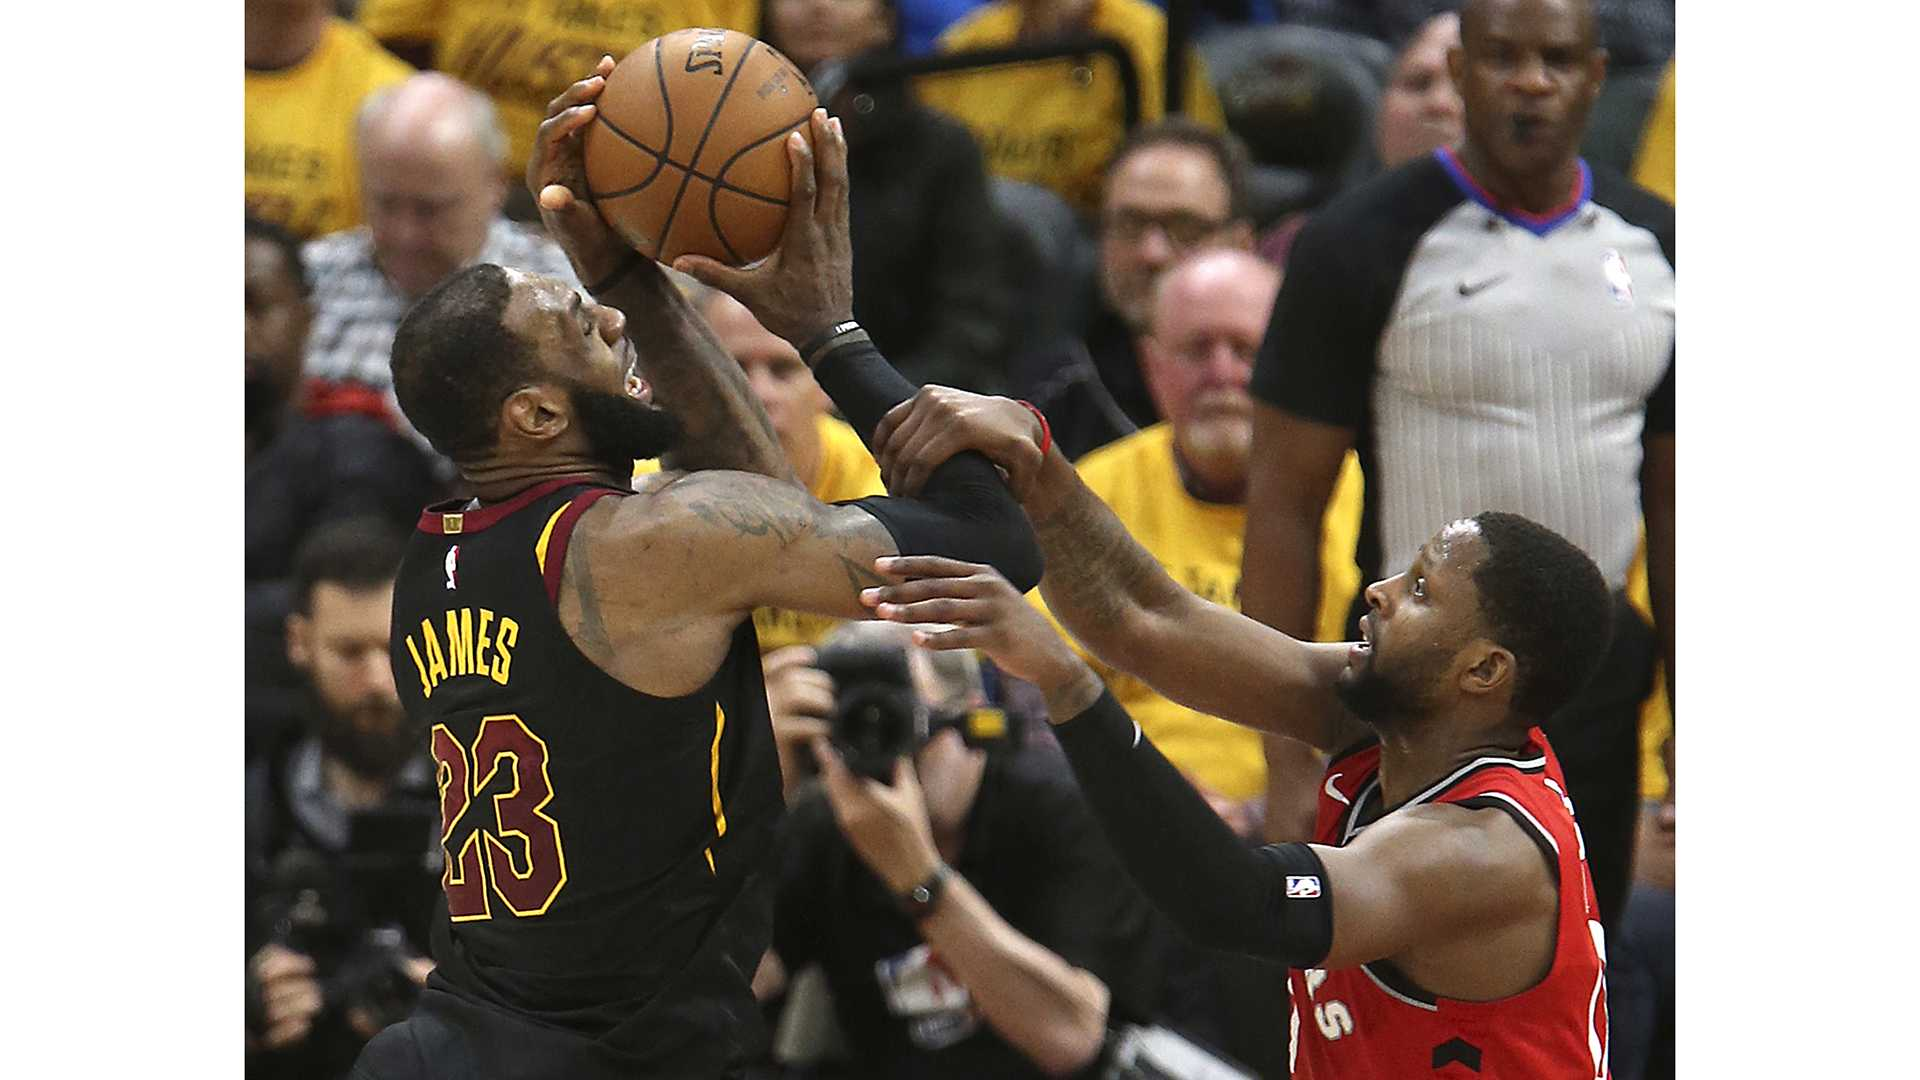 LeBron James is fouled by C.J. Miles in the third quarter of Game 4 of a second-round playoff series on Monday, May 7, 2018 in Cleveland, Ohio. The Cavaliers won the game 128-93 to sweep the series against the Raptors. (Phil Masturzo/Akron Beacon Journal/TNS)